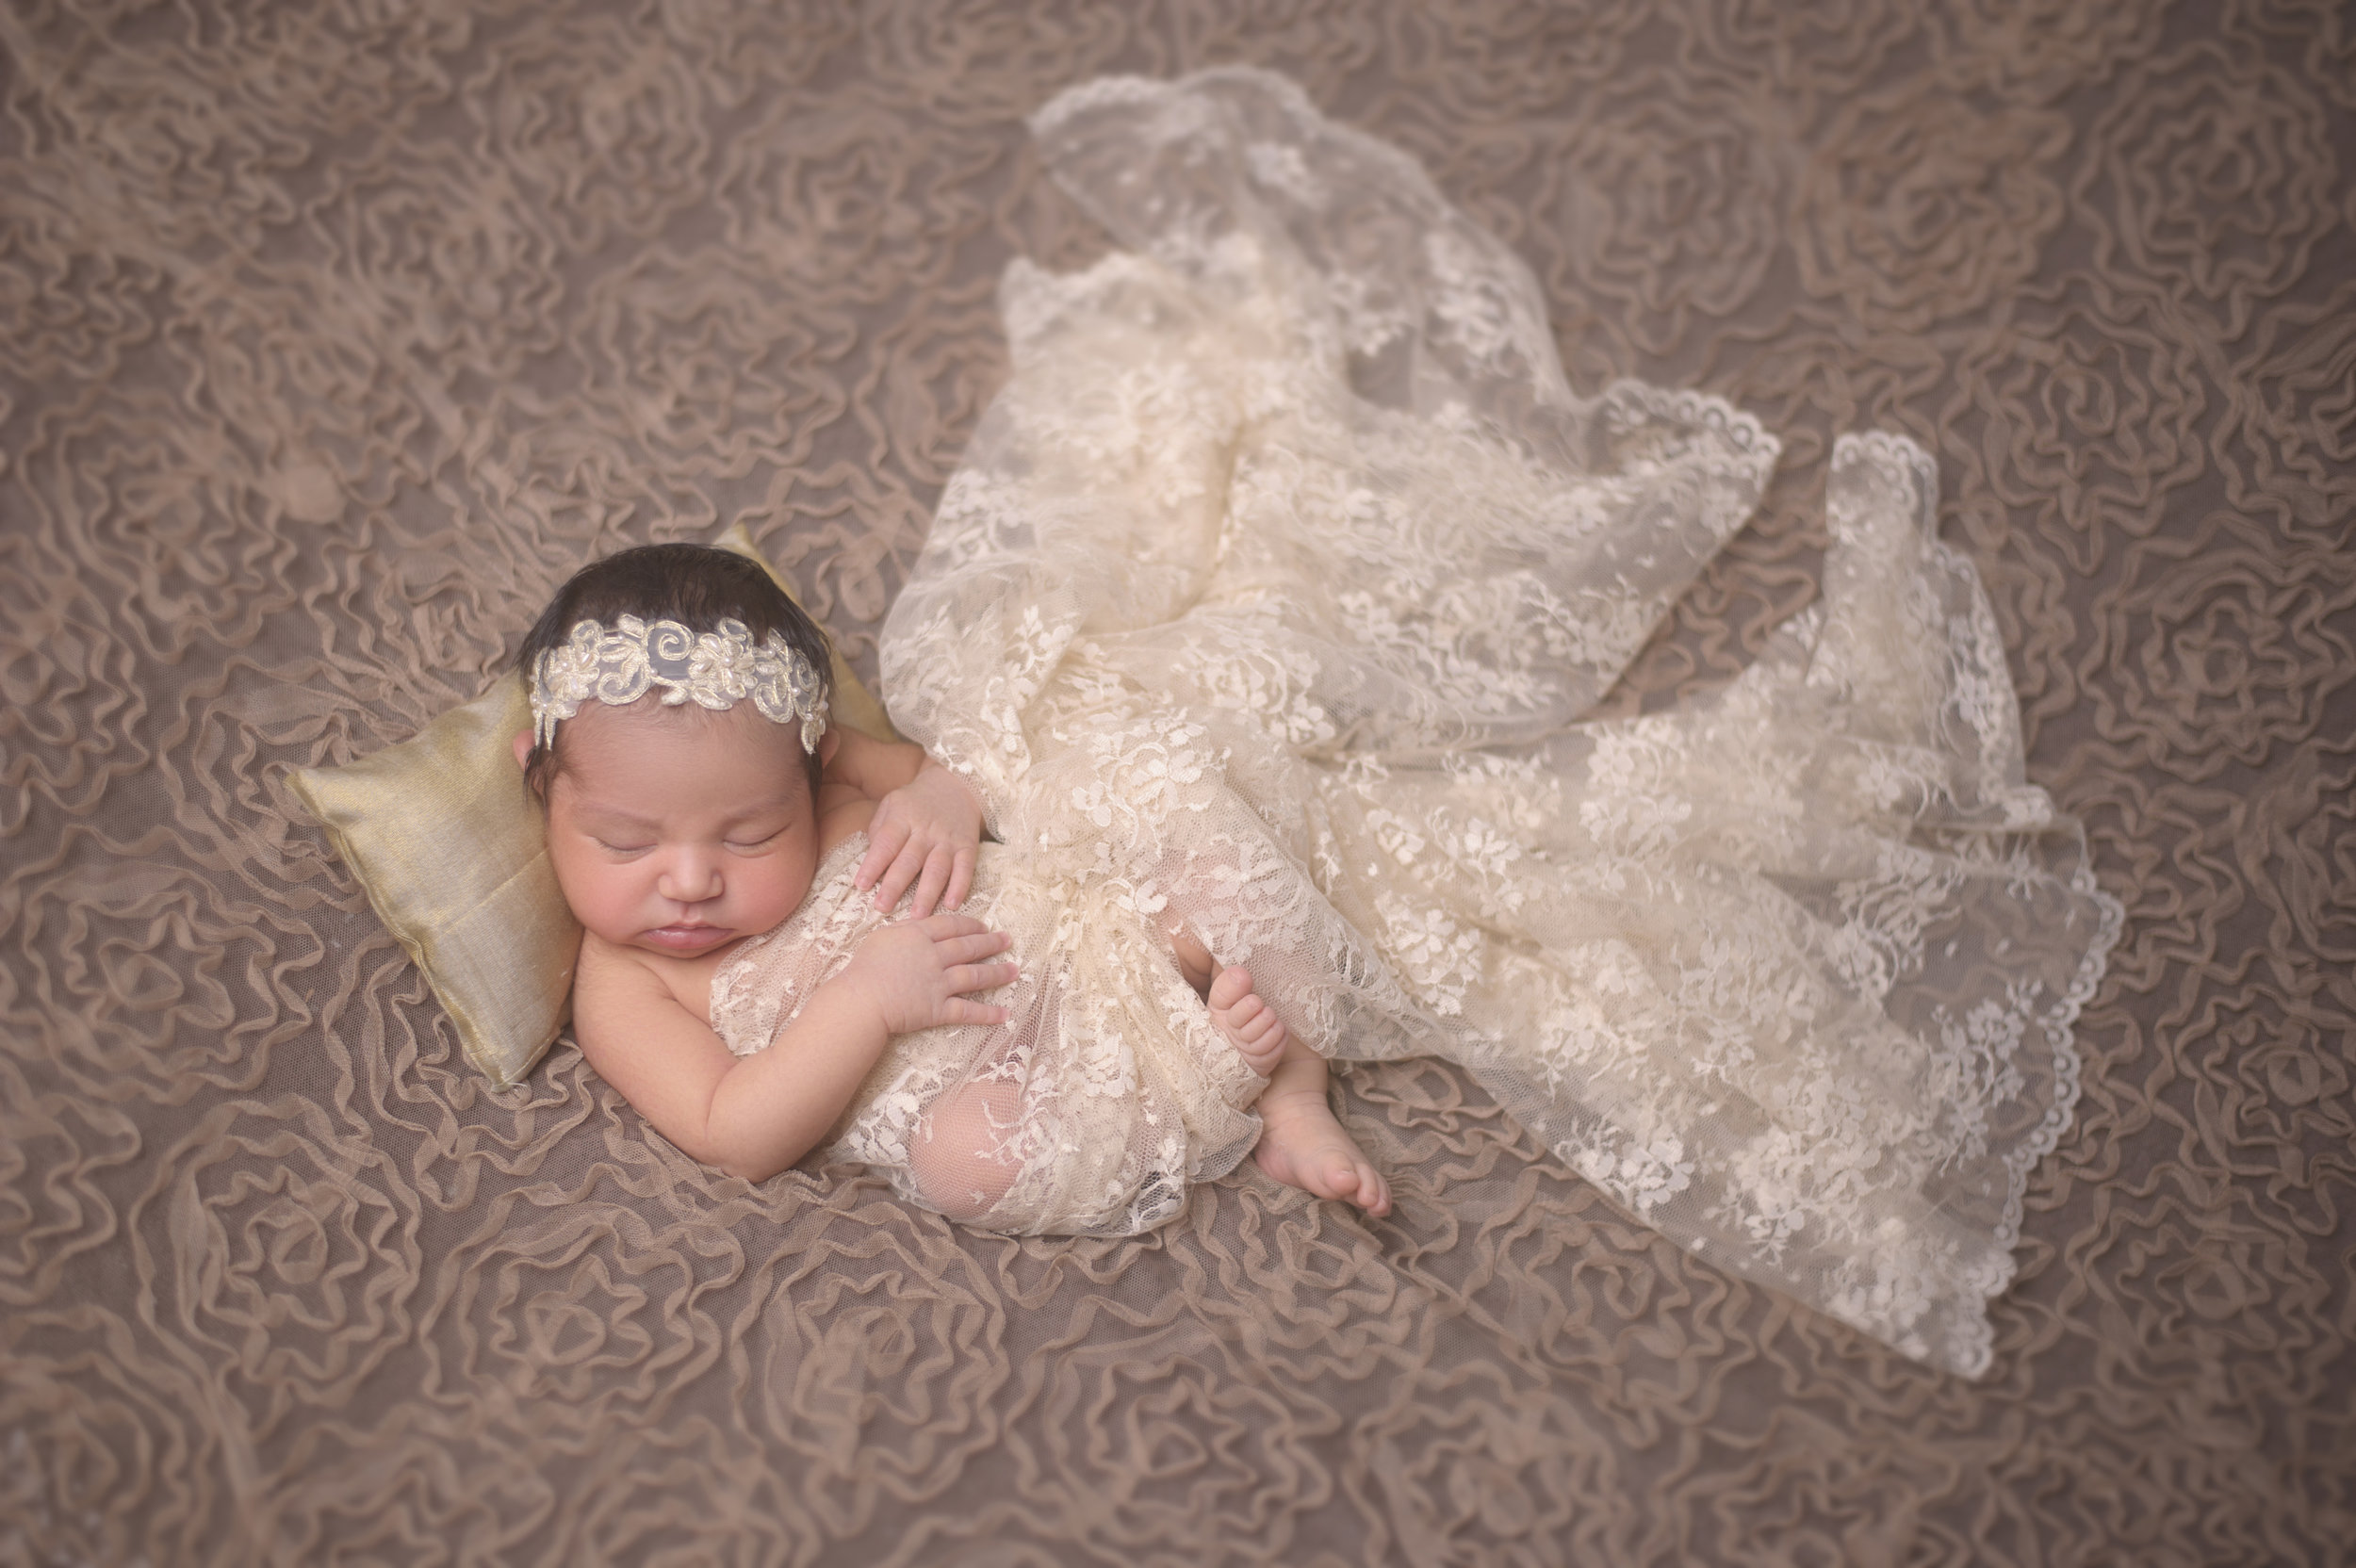 CHICAGO-BEST-NEWBORN-PHOTOGRAPHER-SRI-JANA-6.jpg